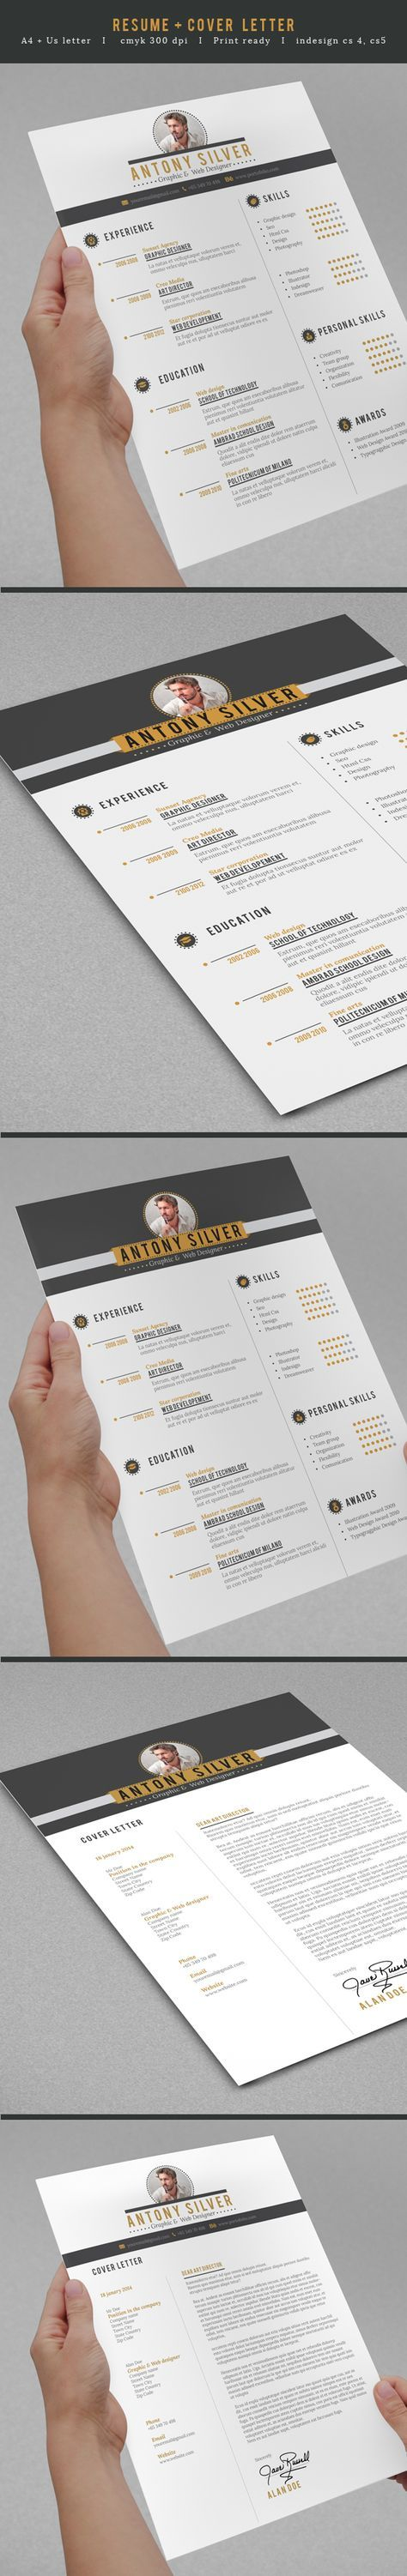 Clean cut resume with some style to